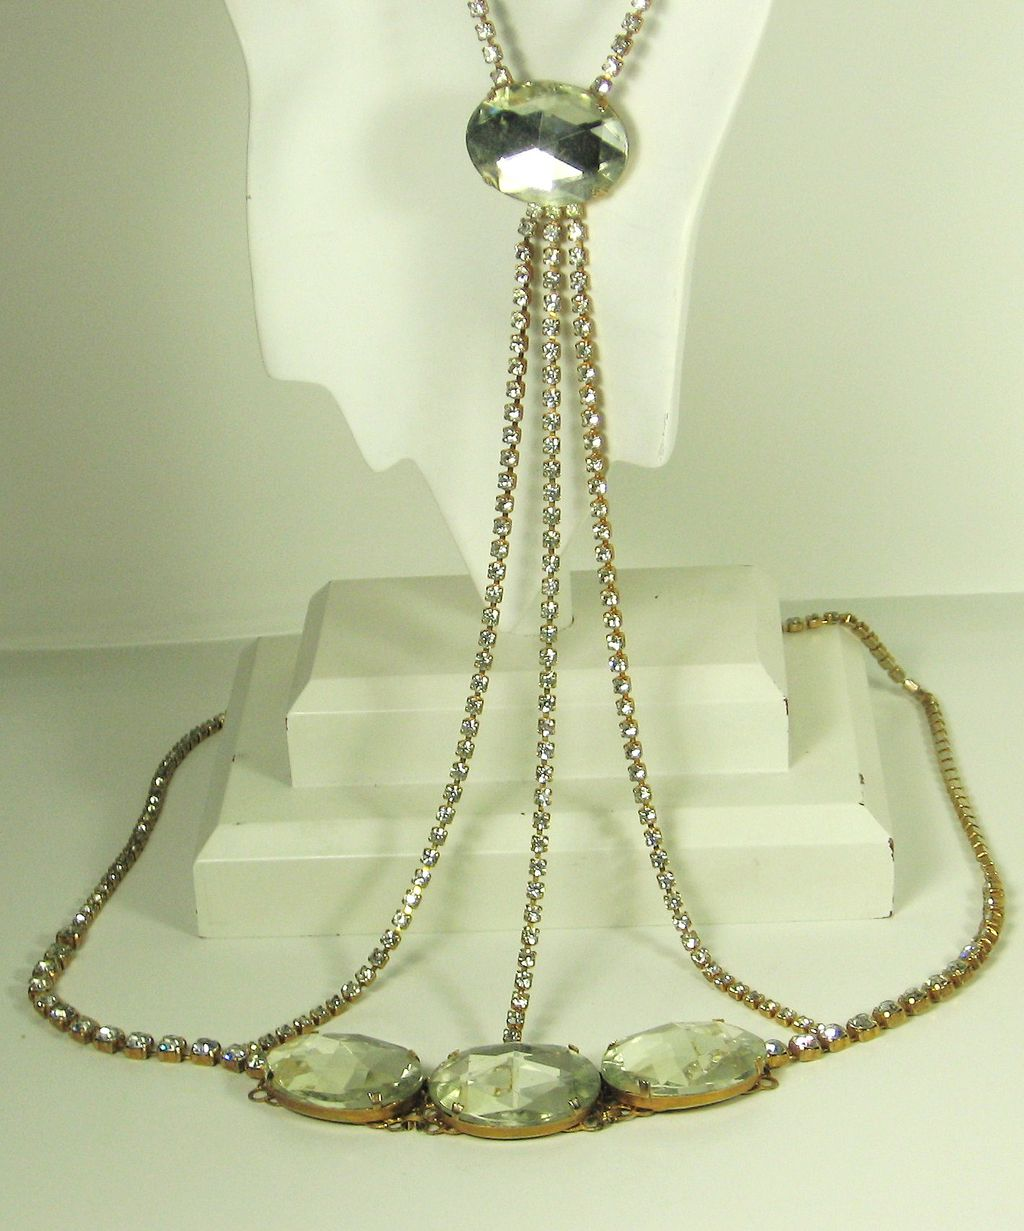 Hattie Carnegie Rhinestone and Faceted Glass Body Jewelry